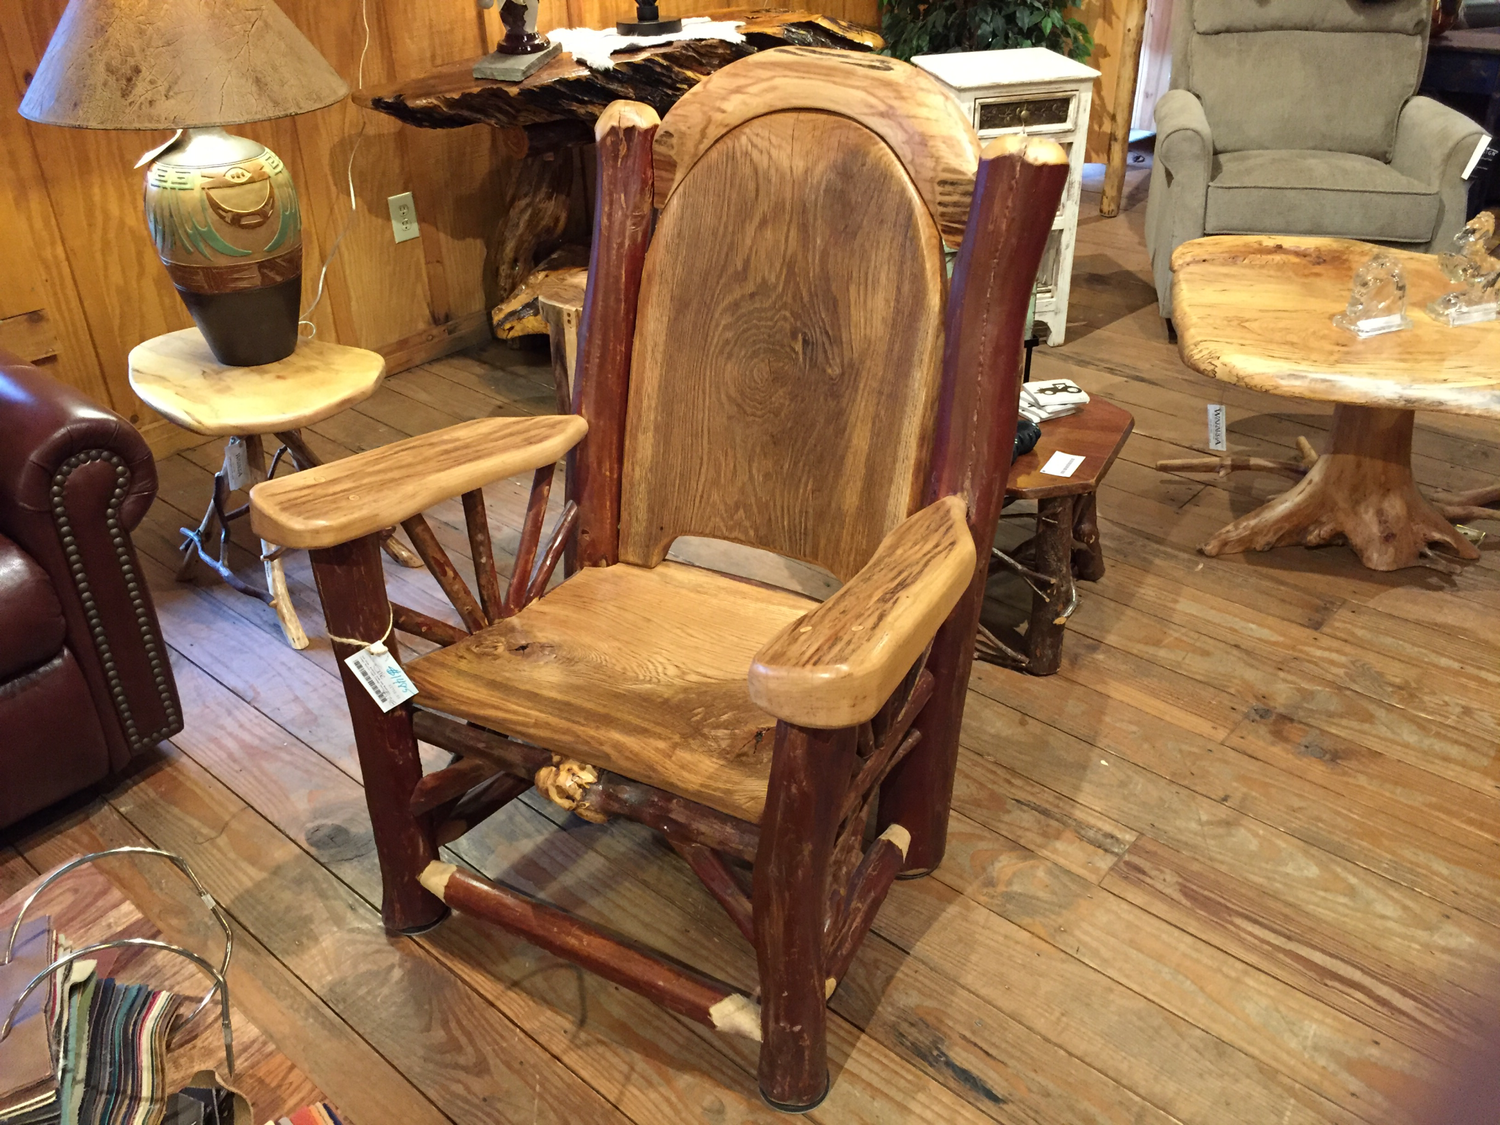 Oak Slab Hickory Arms and Headrest, Crepe Myrtle Logs Lounge Chair